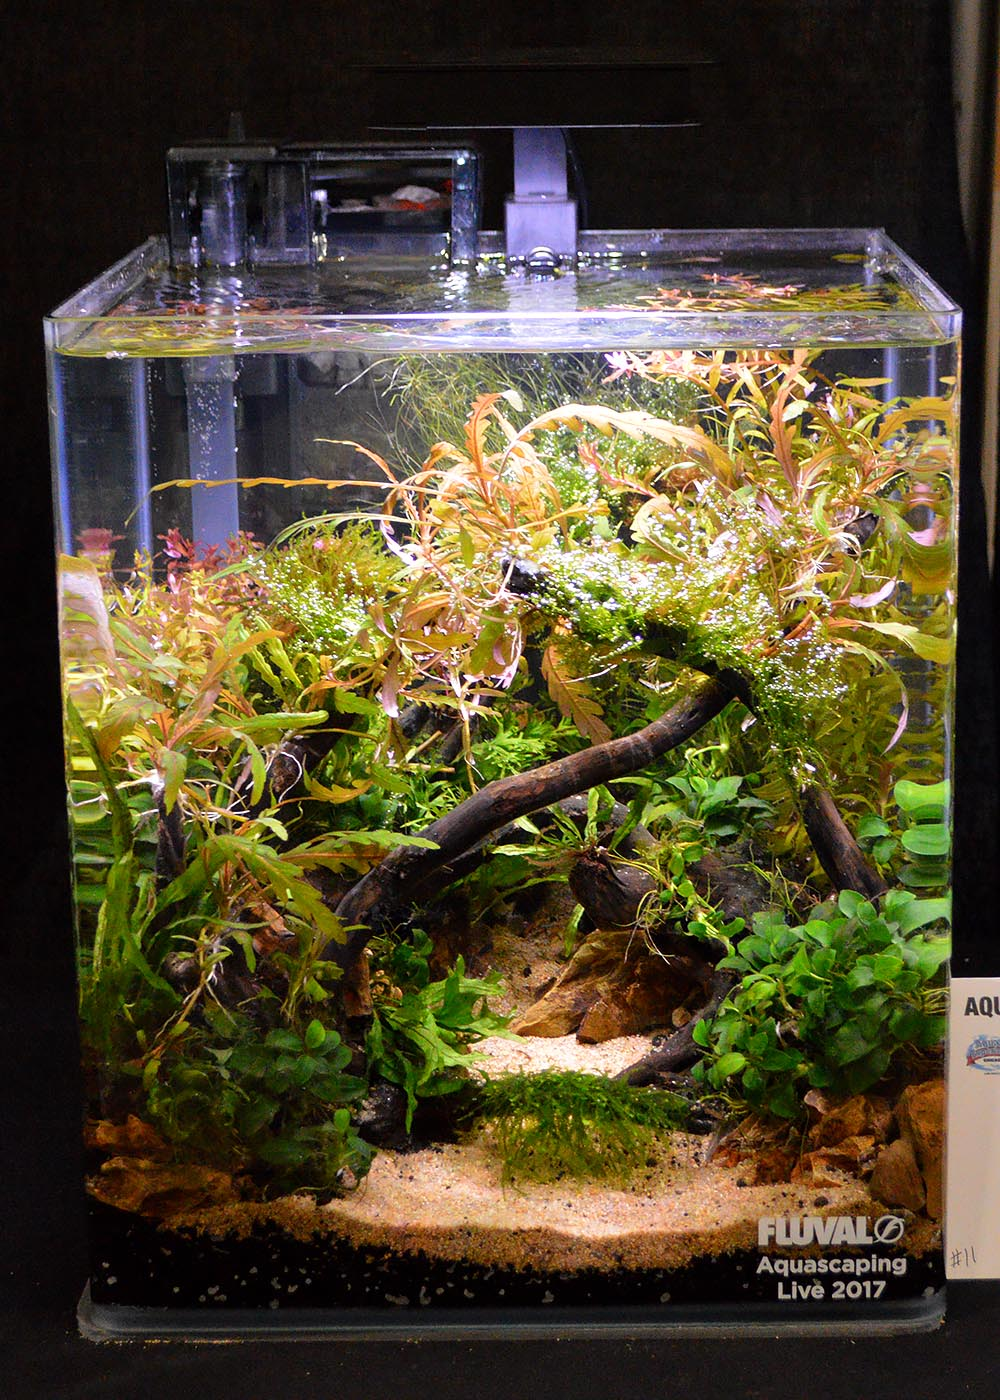 Aquascape by Kevin Kelly